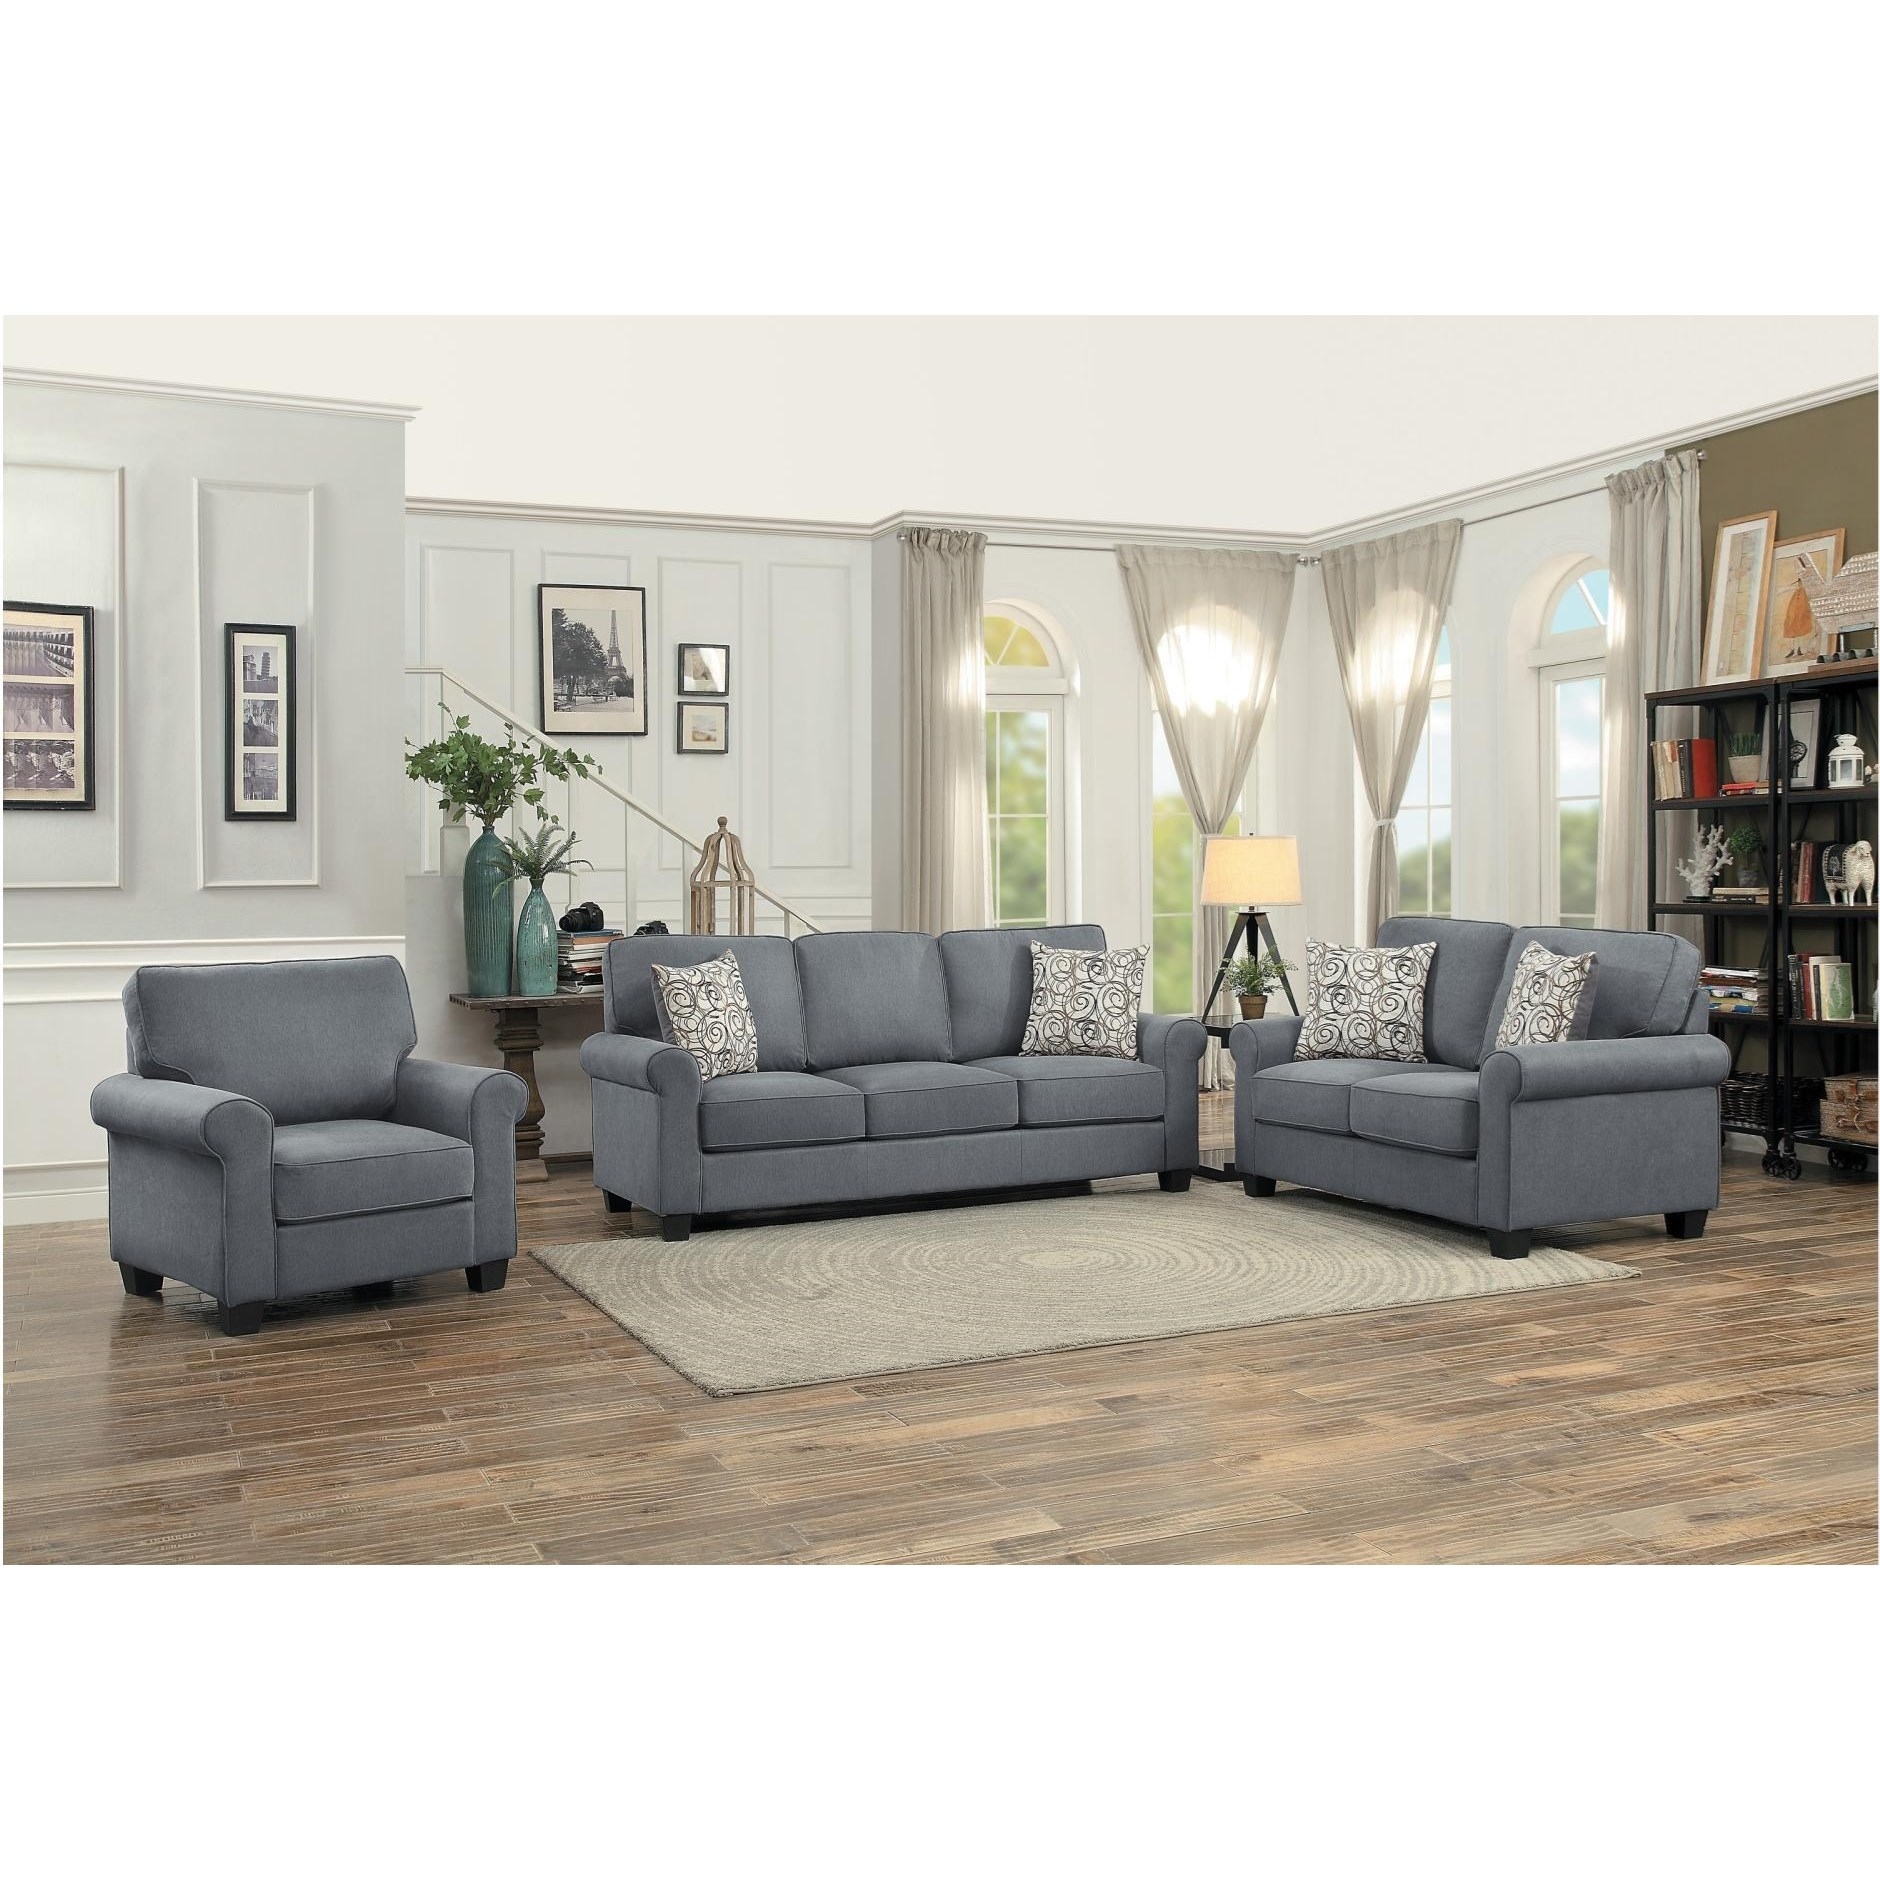 Selkirk Living Room Group by Homelegance at Nassau Furniture and Mattress